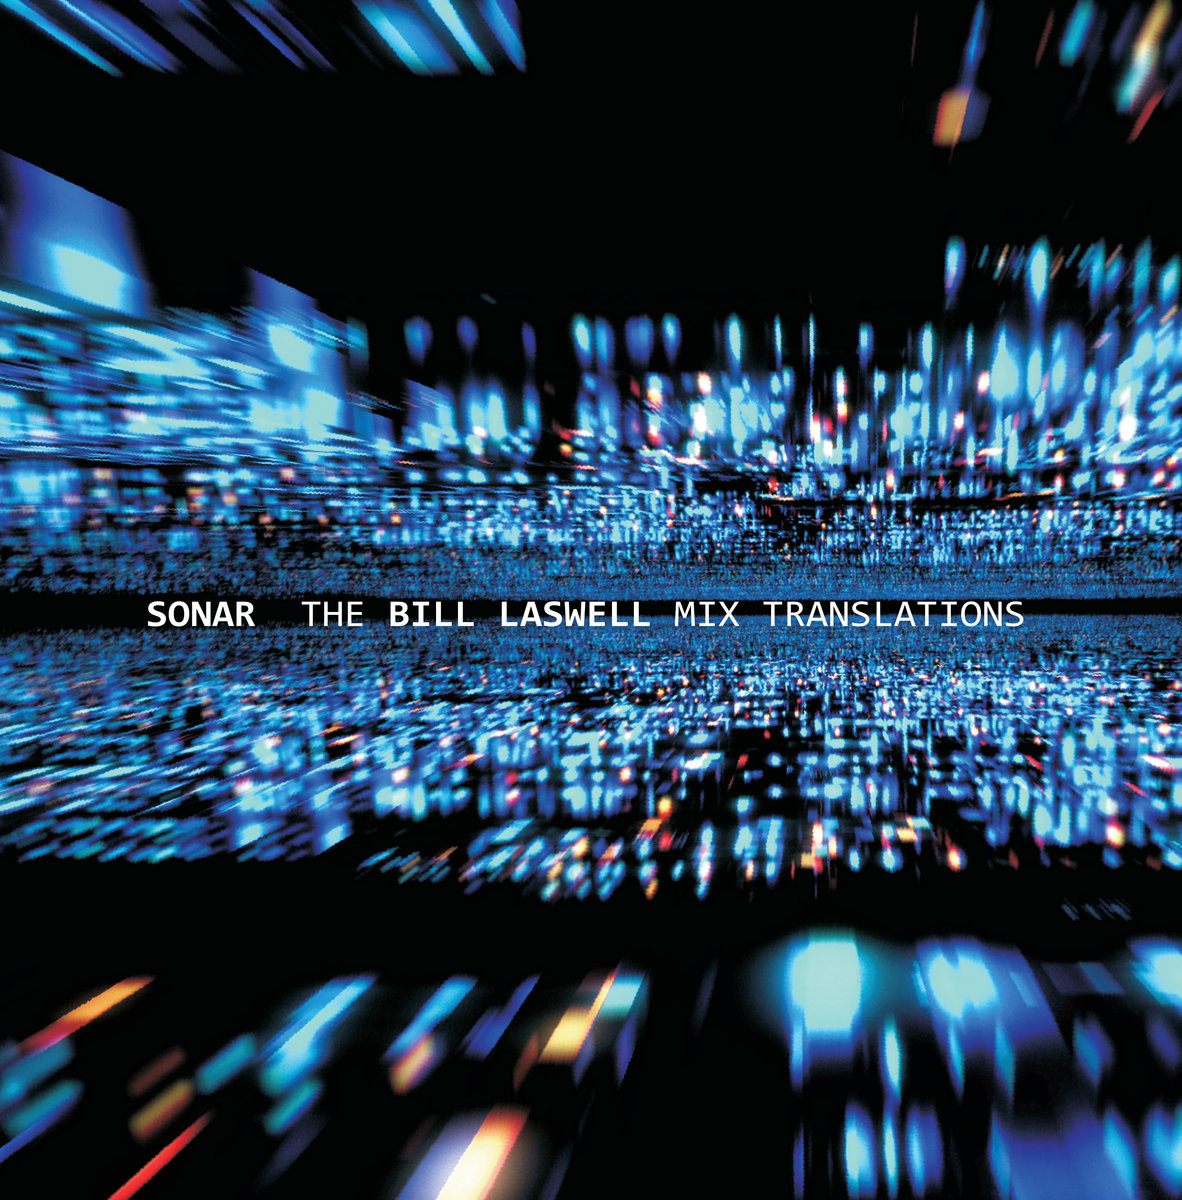 The Bill Laswell Mix Translations 1200pix